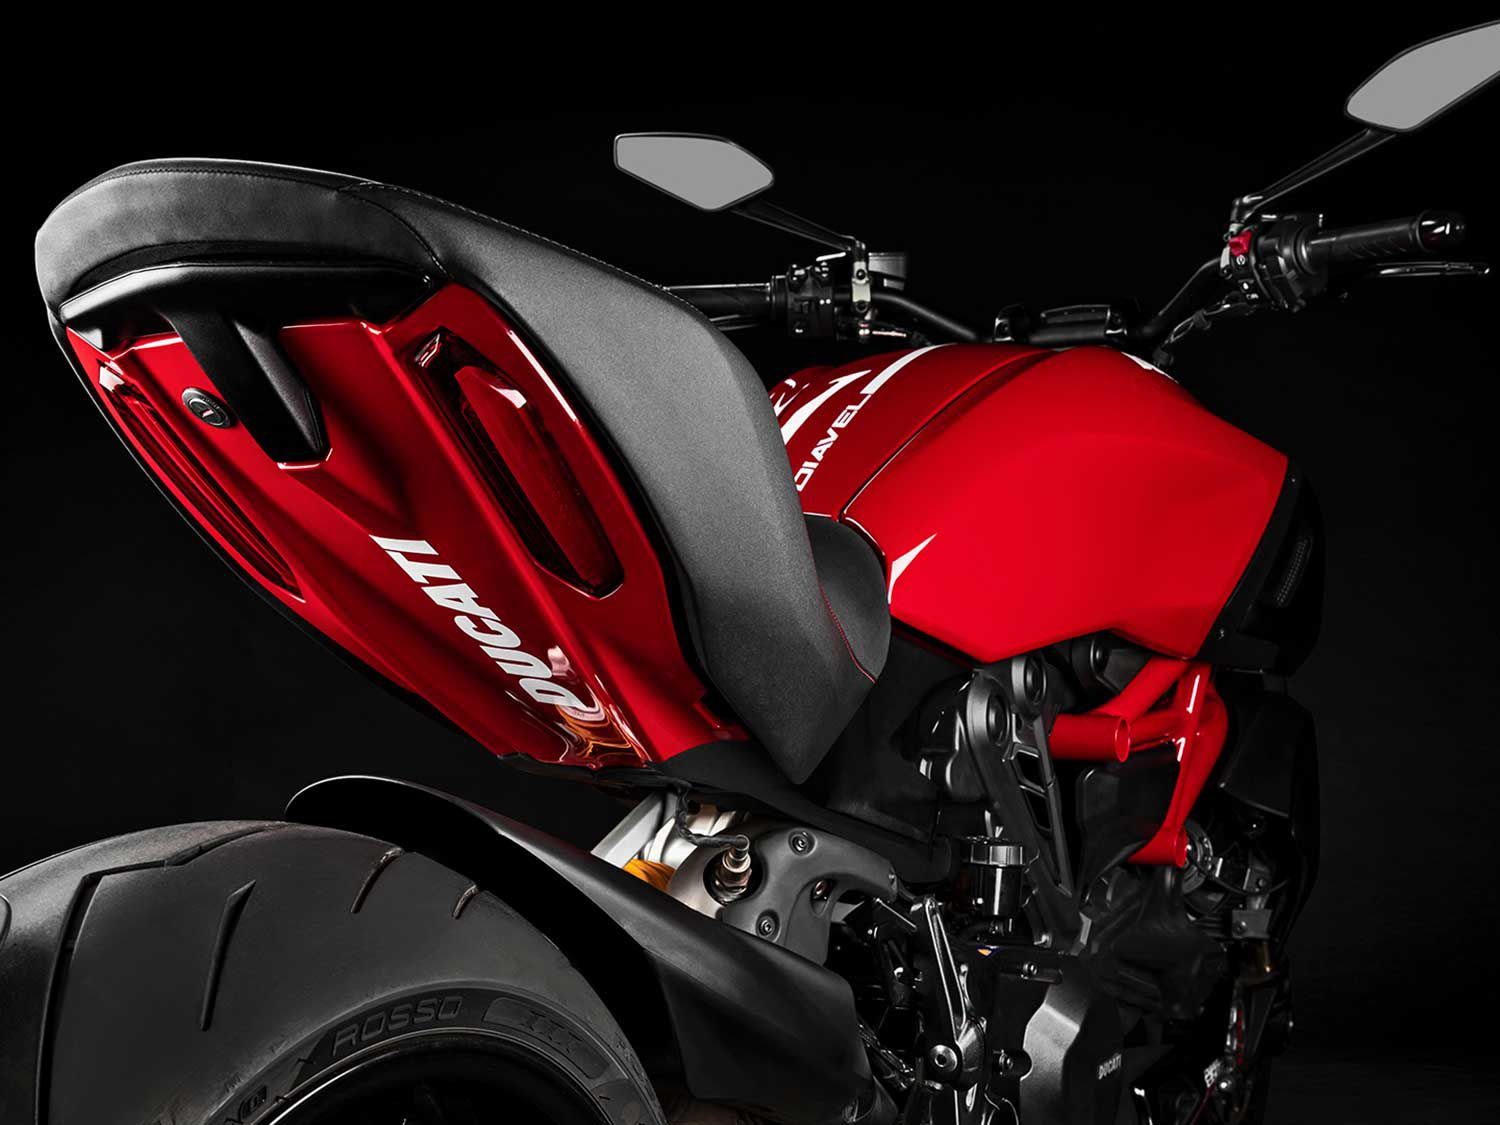 Ducati flair on the 1260 S comes standard, with the new red tone contrasted against white details.